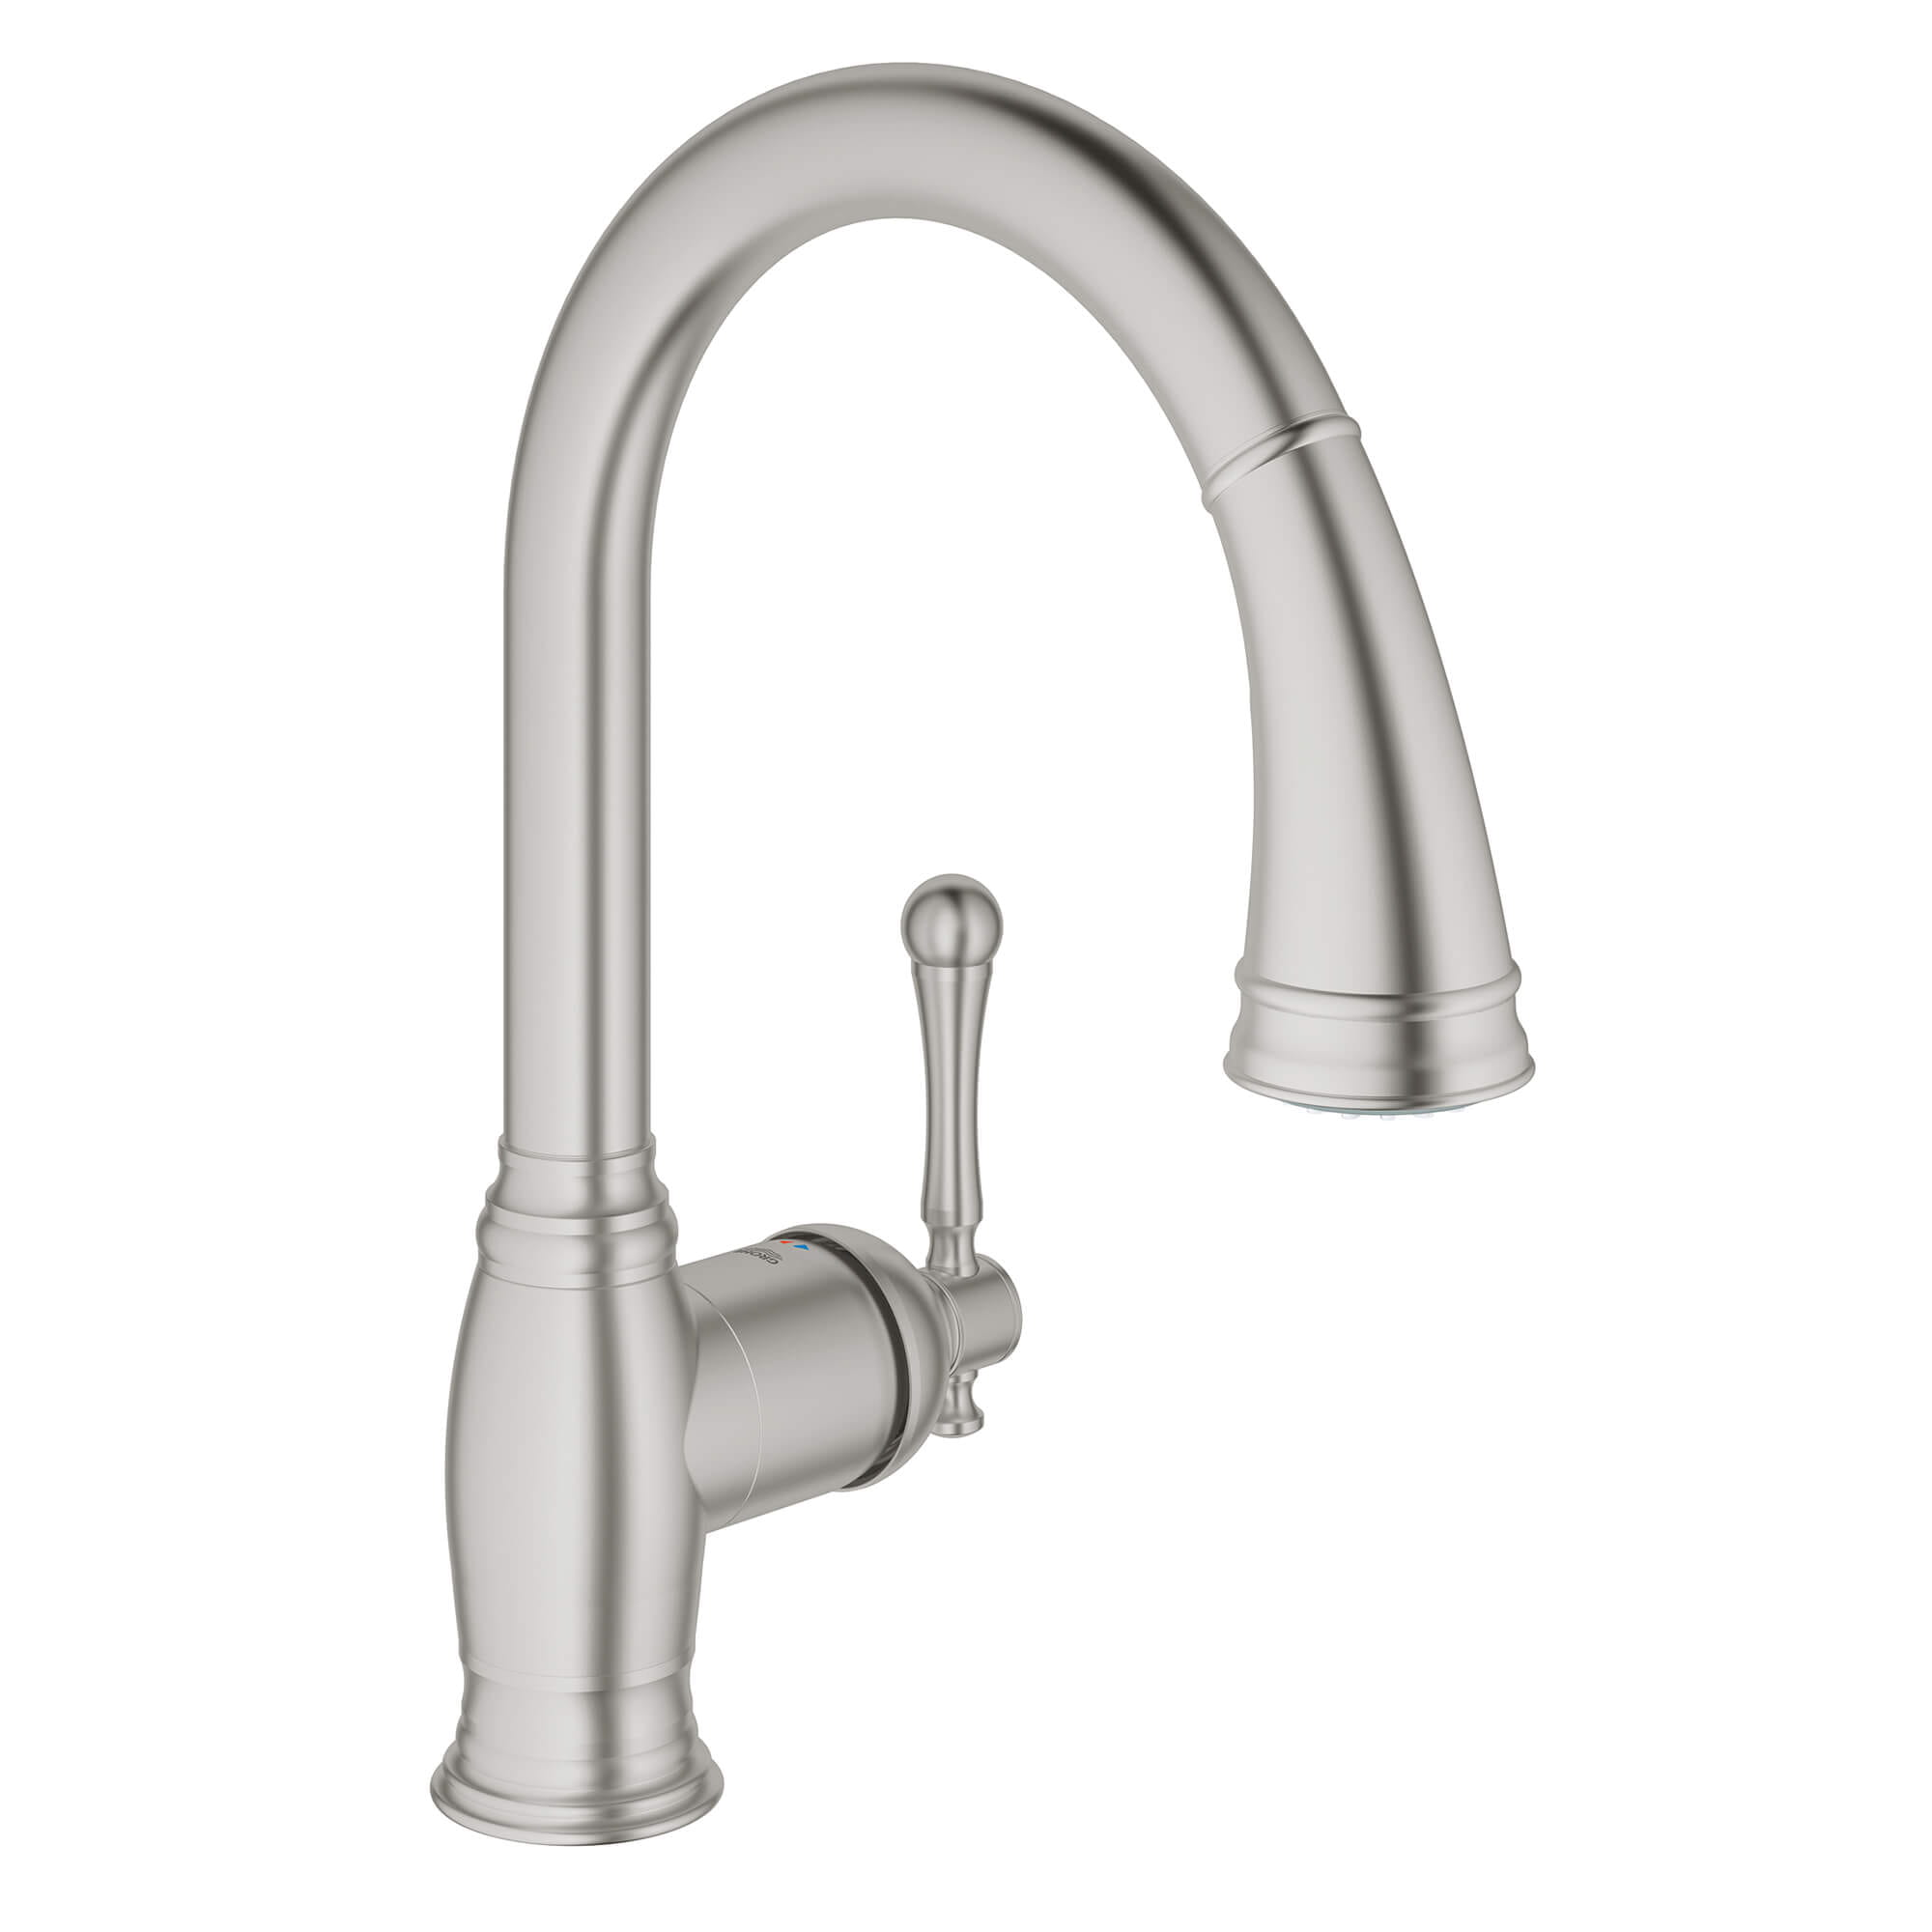 Bridgeford Single Handle Pull Down Kitchen Faucet Dual Spray 1 75 Gpm